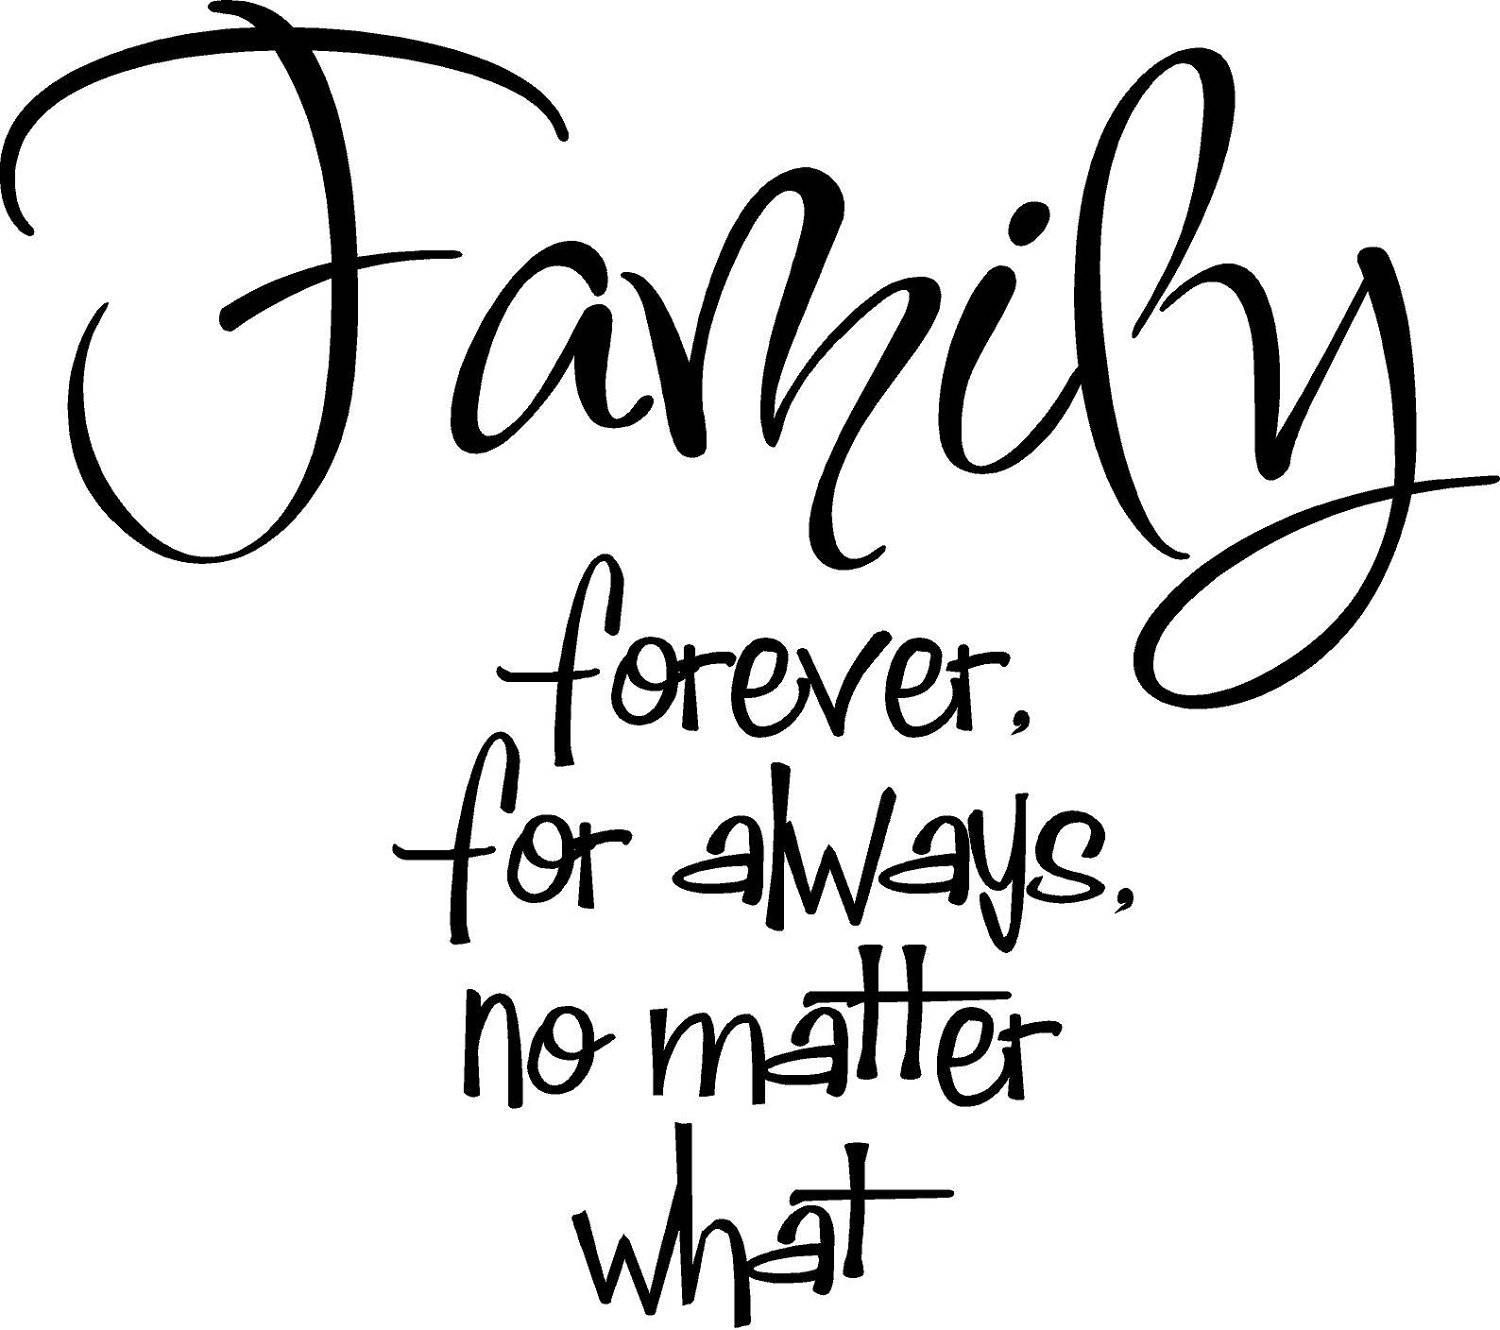 Family Is Forever Quotes Brilliant Vinyl Saying  Family Forever For Always No Matter What  Google